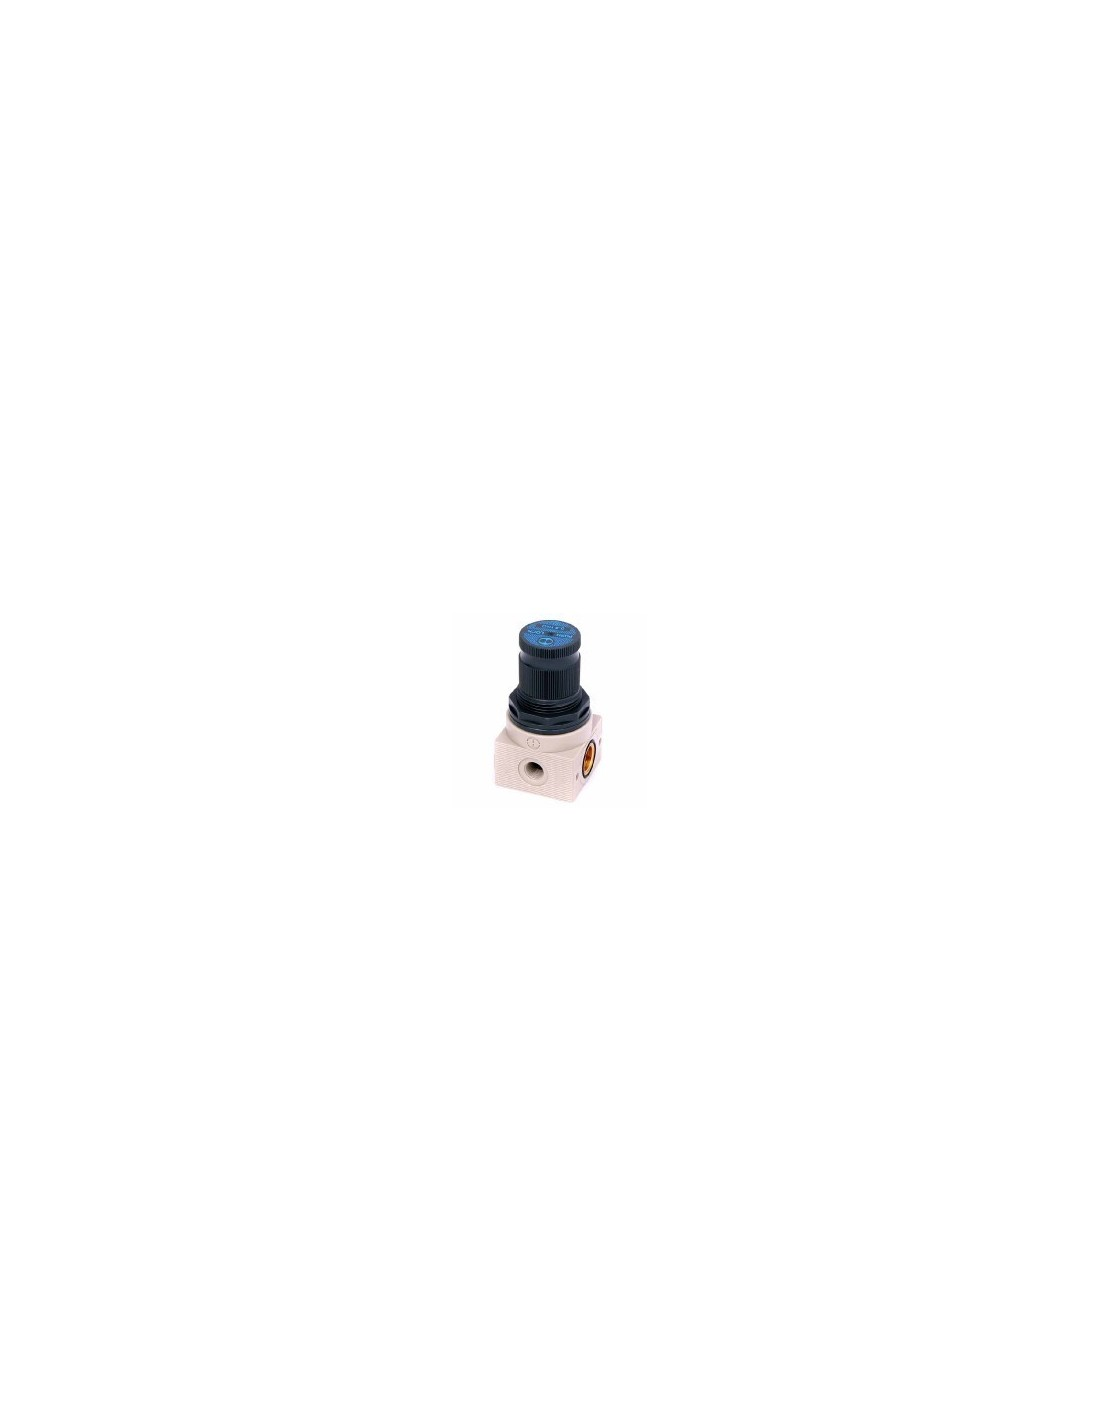 VEN00869 - Regulator MRA 1/4-8mm-(SL 2000)